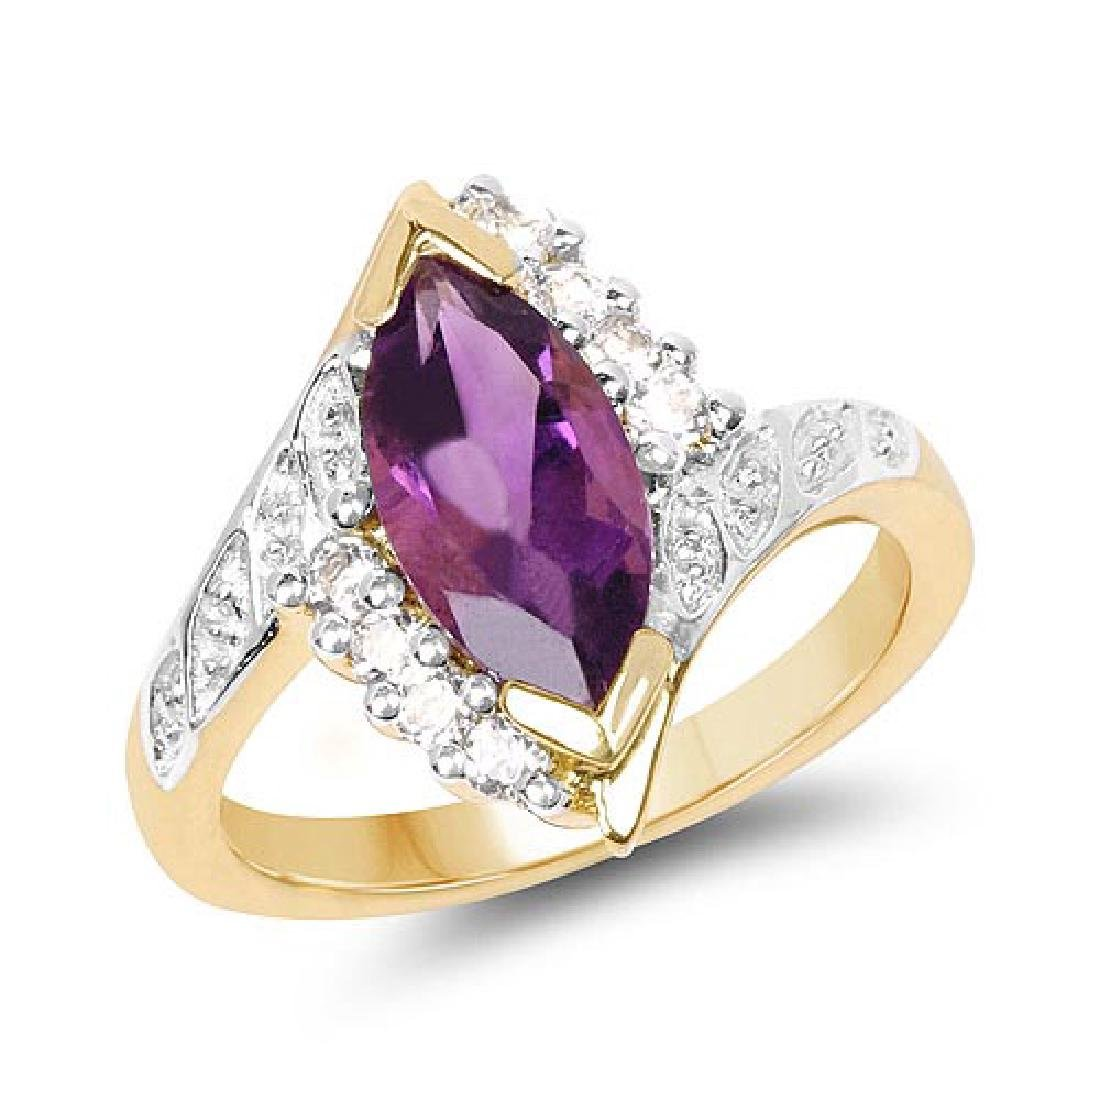 14K Yellow Gold Plated 1.77 Carat Genuine Amethyst and